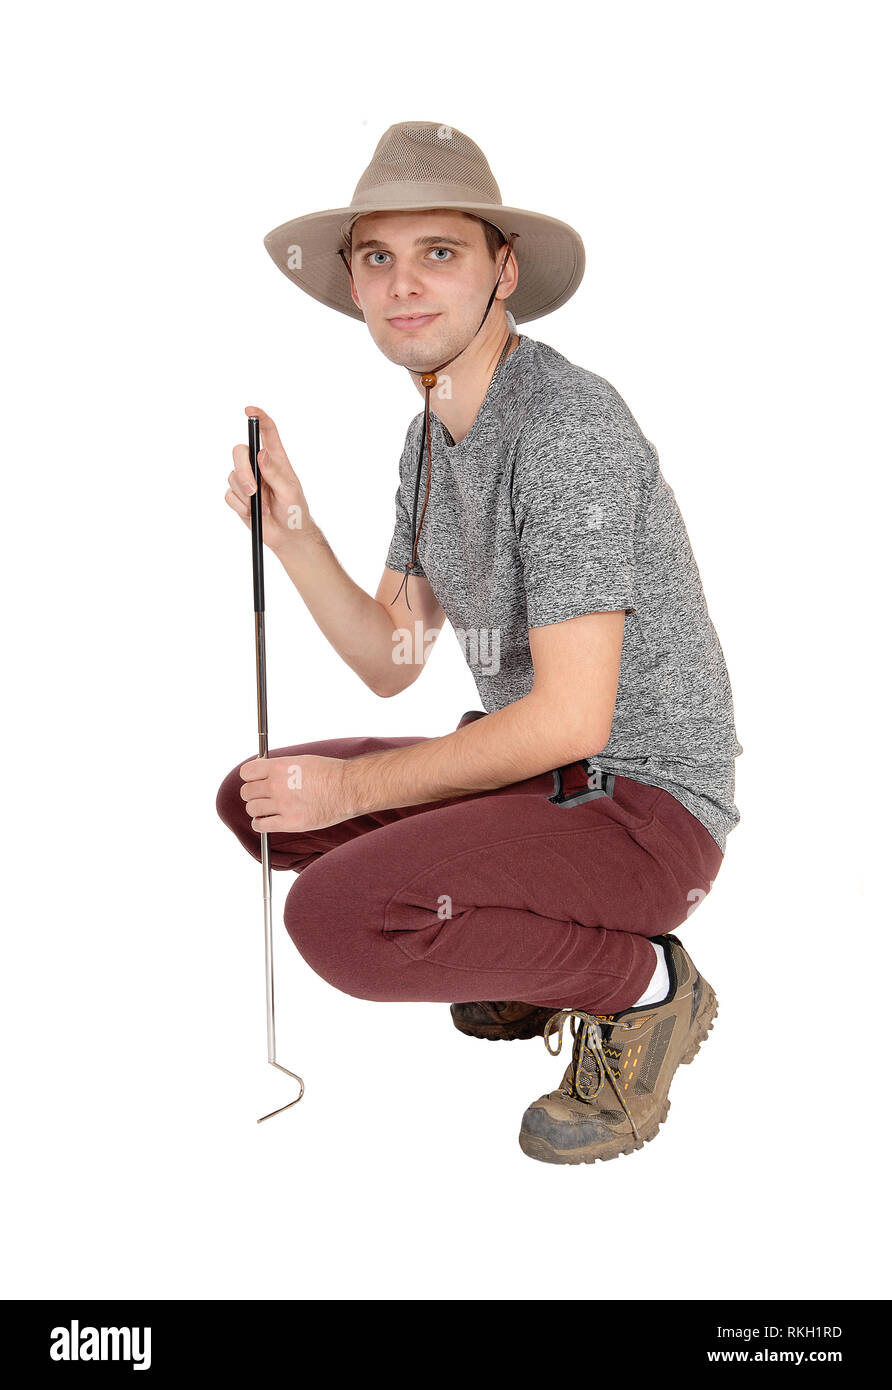 A slim young man in a gray sweater with a safari hat and a tool to catch some snags crouching on the floor, isolated for white background - Stock Image